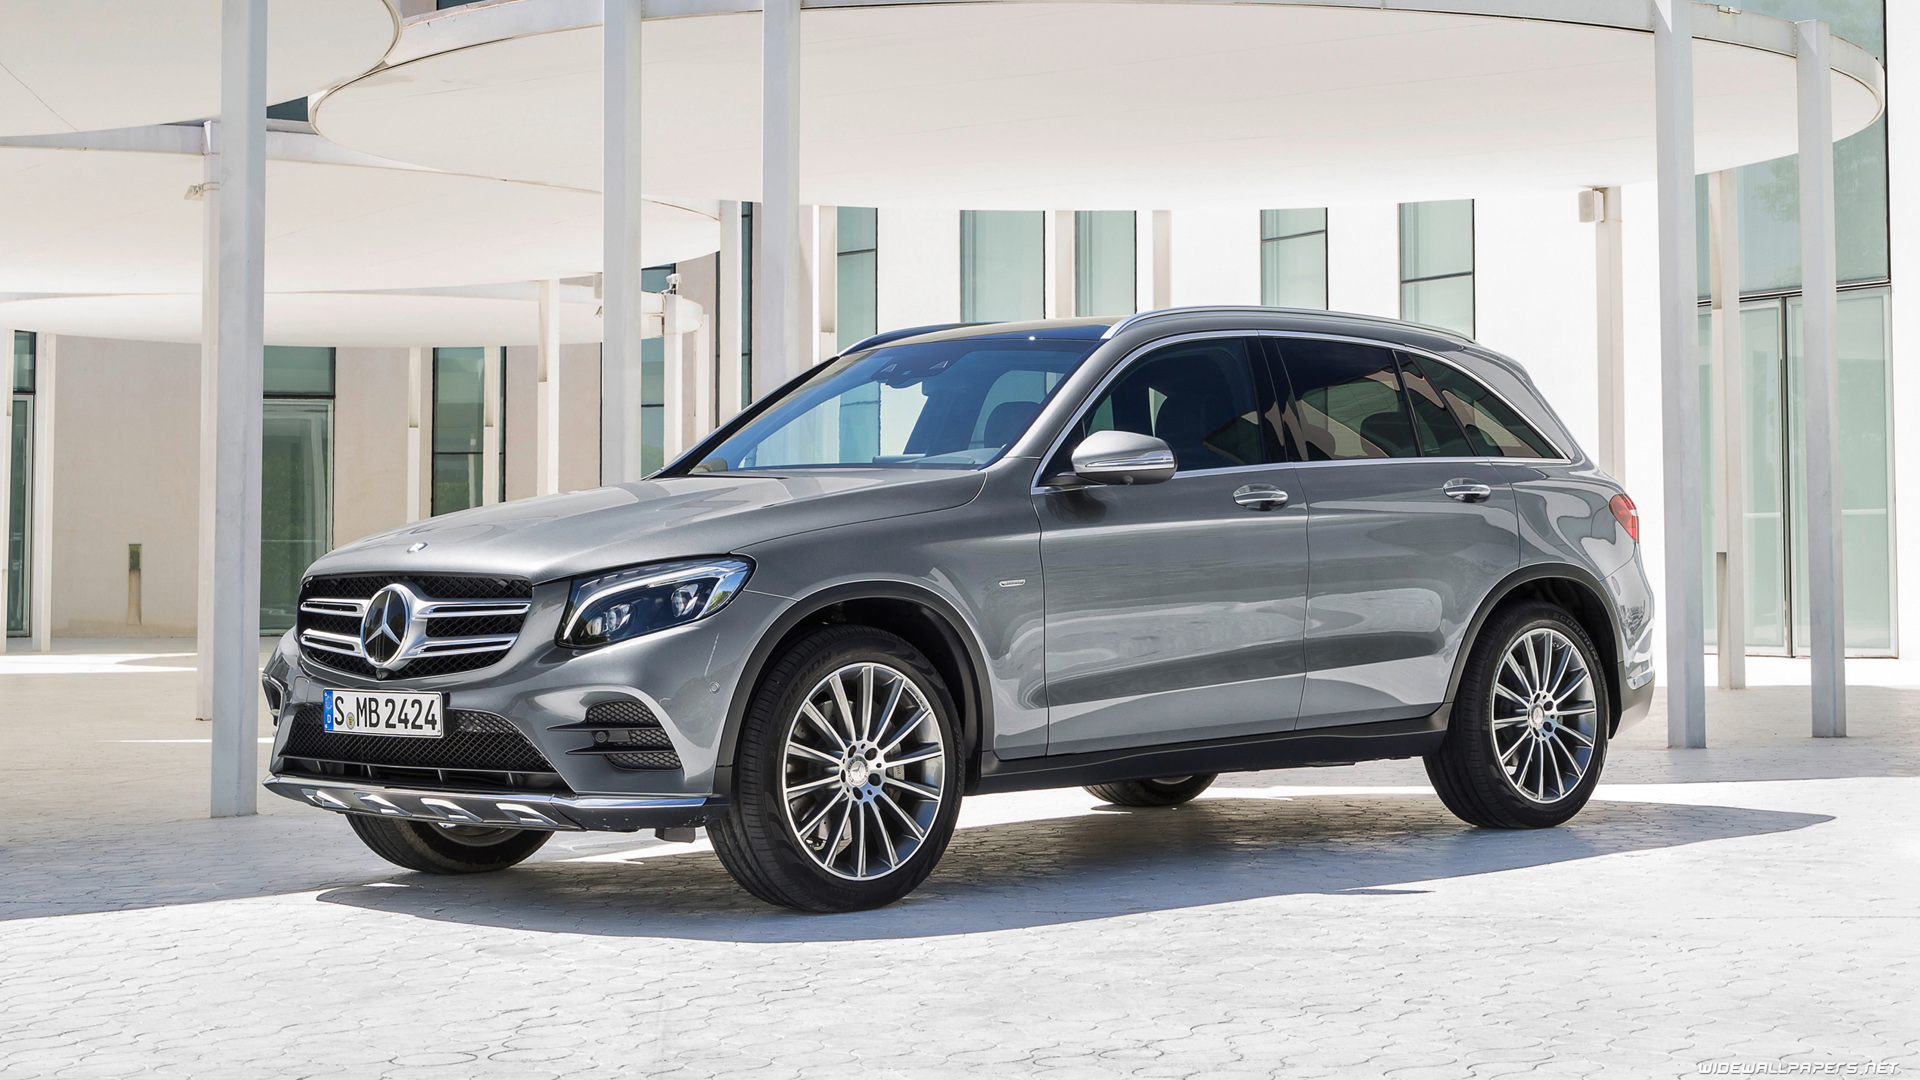 mercedes benz glc class cars desktop wallpapers hd and wide wallpapers. Black Bedroom Furniture Sets. Home Design Ideas